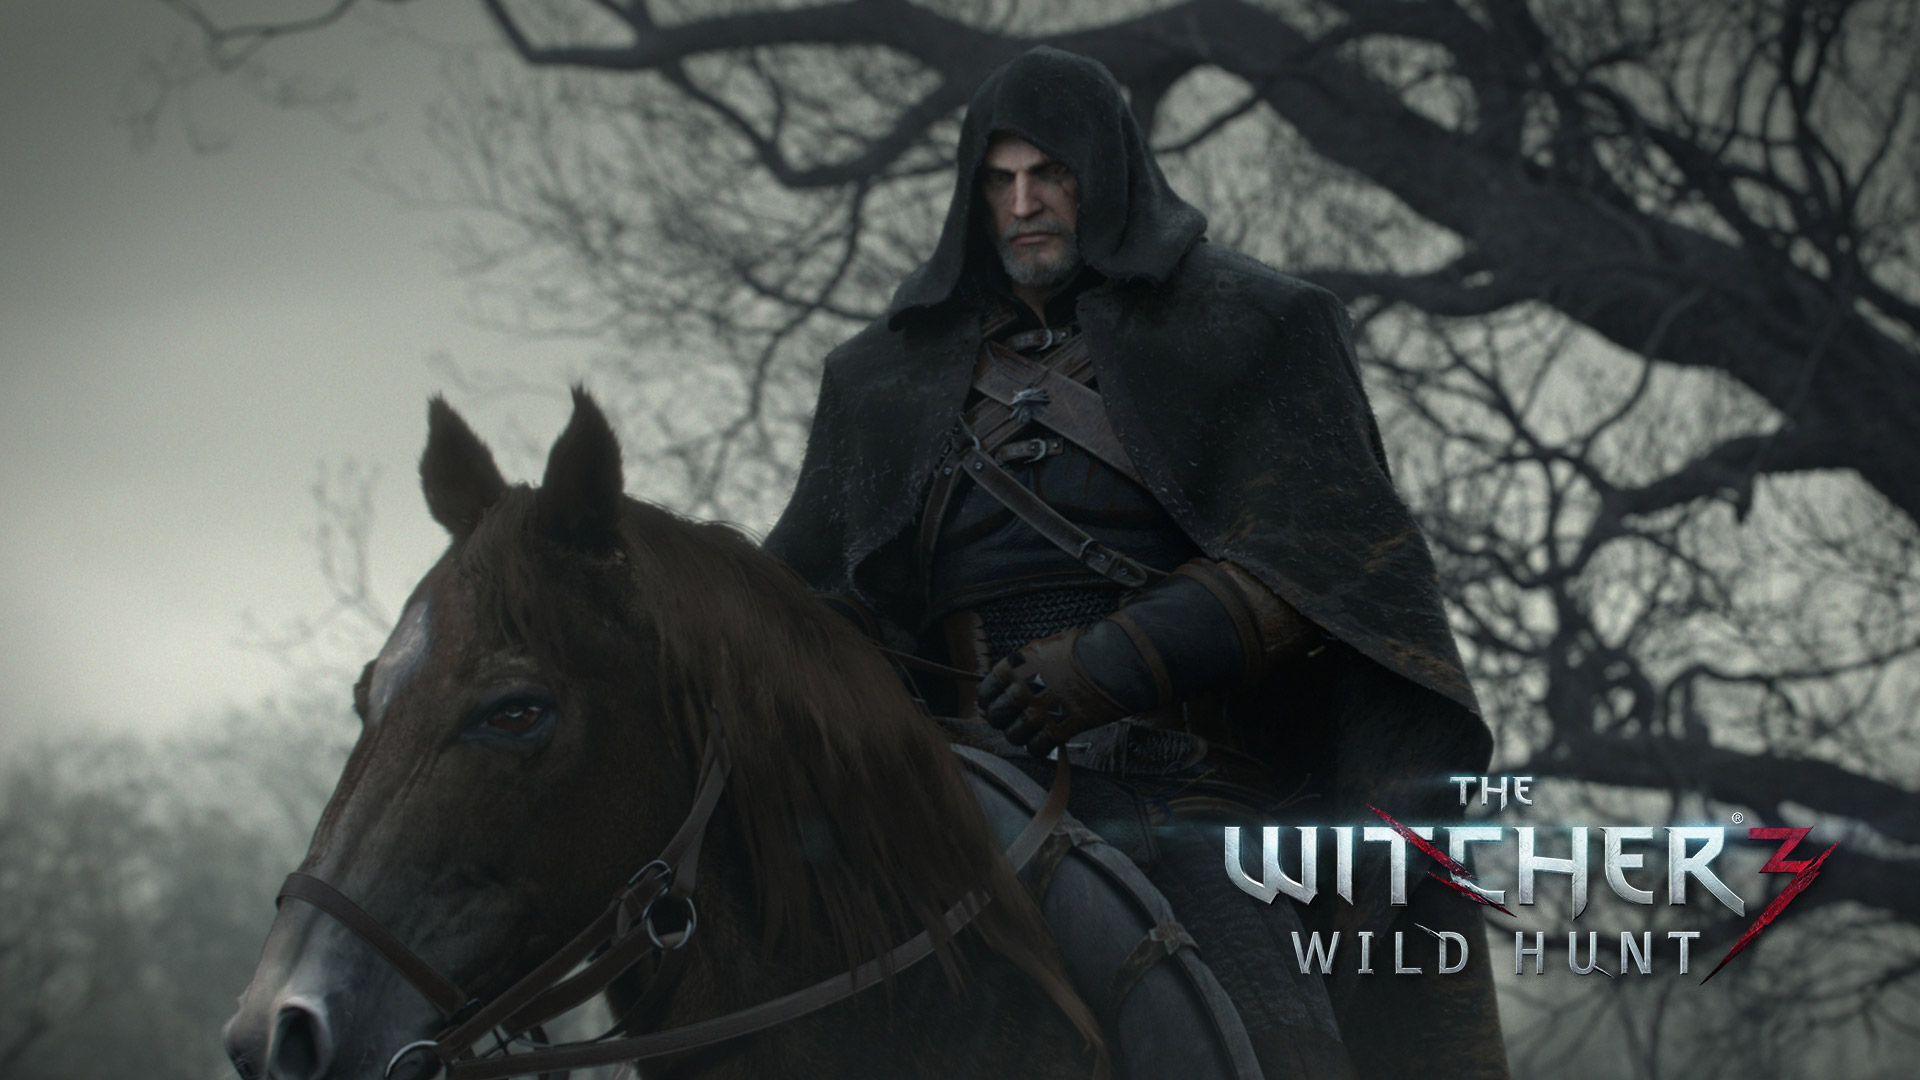 The Witcher 3 Wallpaper in 1920x1080